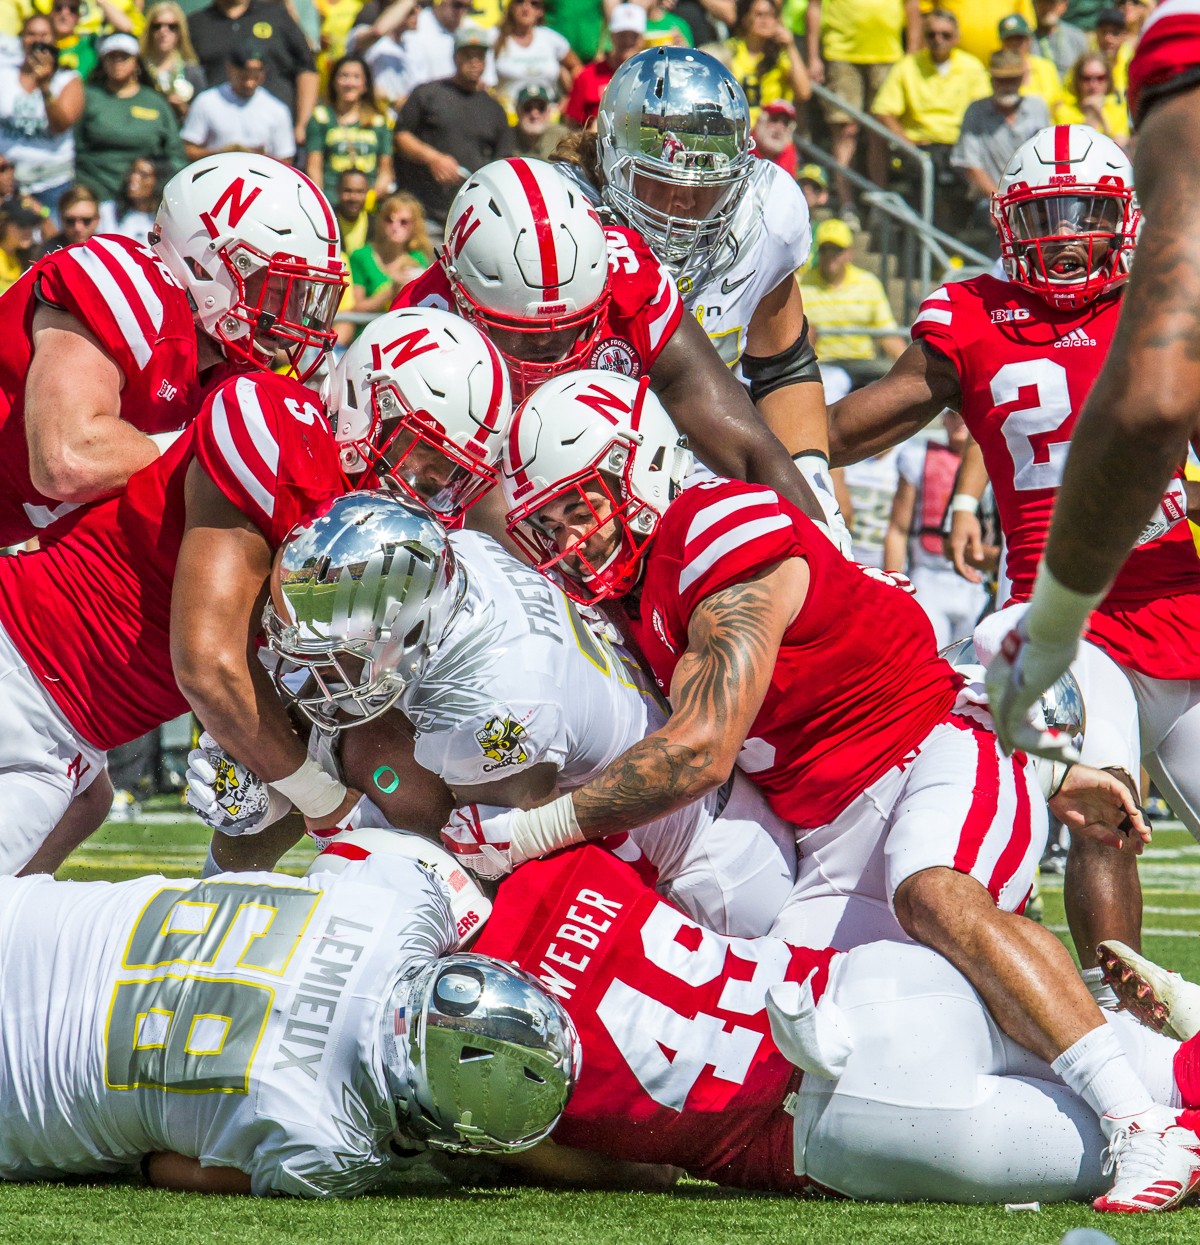 Oregon running back Royce Freeman (#21) is brought down by the Nebraska defense. The Oregon Ducks lead the Nebraska Cornhuskers 42 to 14 at the end of the first half on Saturday, September 9, 2017. Photo by Ben Lonergan, Oregon News Lab